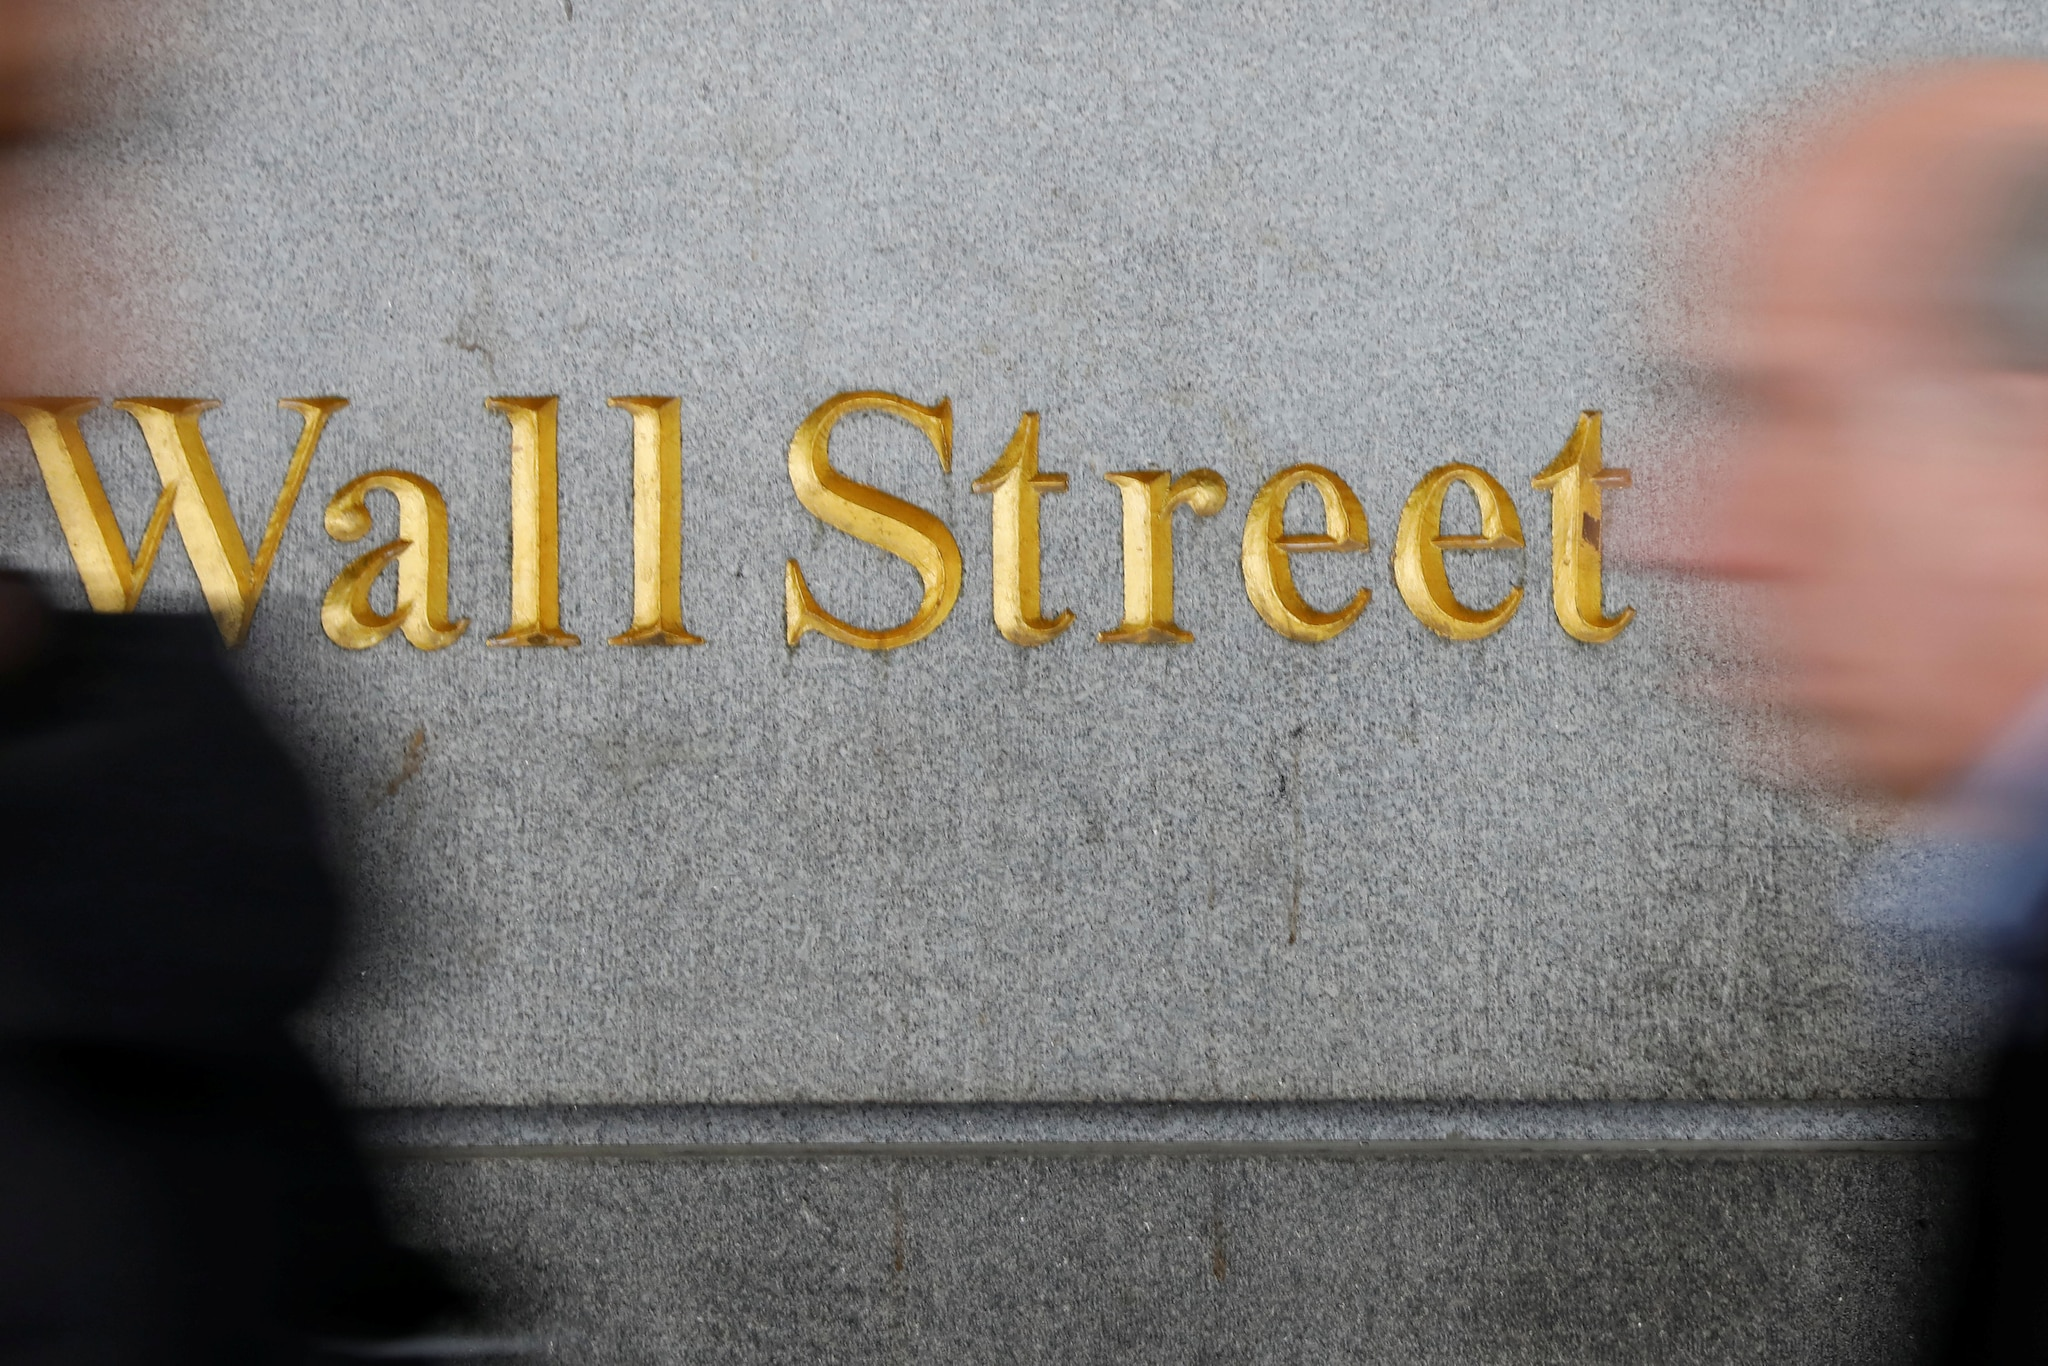 2. US: Stocks closed at record high on Wednesday as investors bet on a potential note cut from the Federal Reserve later this month after the release of weaker-than-expected economic data. On Wall Street, the Dow Jones Industrial Average rose 179.32 points, or 0.67 percent, to 26,966, the S&P 500 gained 22.81 points, or 0.77 percent, to 2,995.82 and the Nasdaq Composite added 61.14 points, or 0.75 percent, to 8,170.23. The U.S. market closed early due to the Fourth of July holiday and will reopen Friday, when the closely-watched monthly jobs report will provide one of the most important data points before the Federal Reserve holds its next meeting at the end of the month. (Image: Reuters)